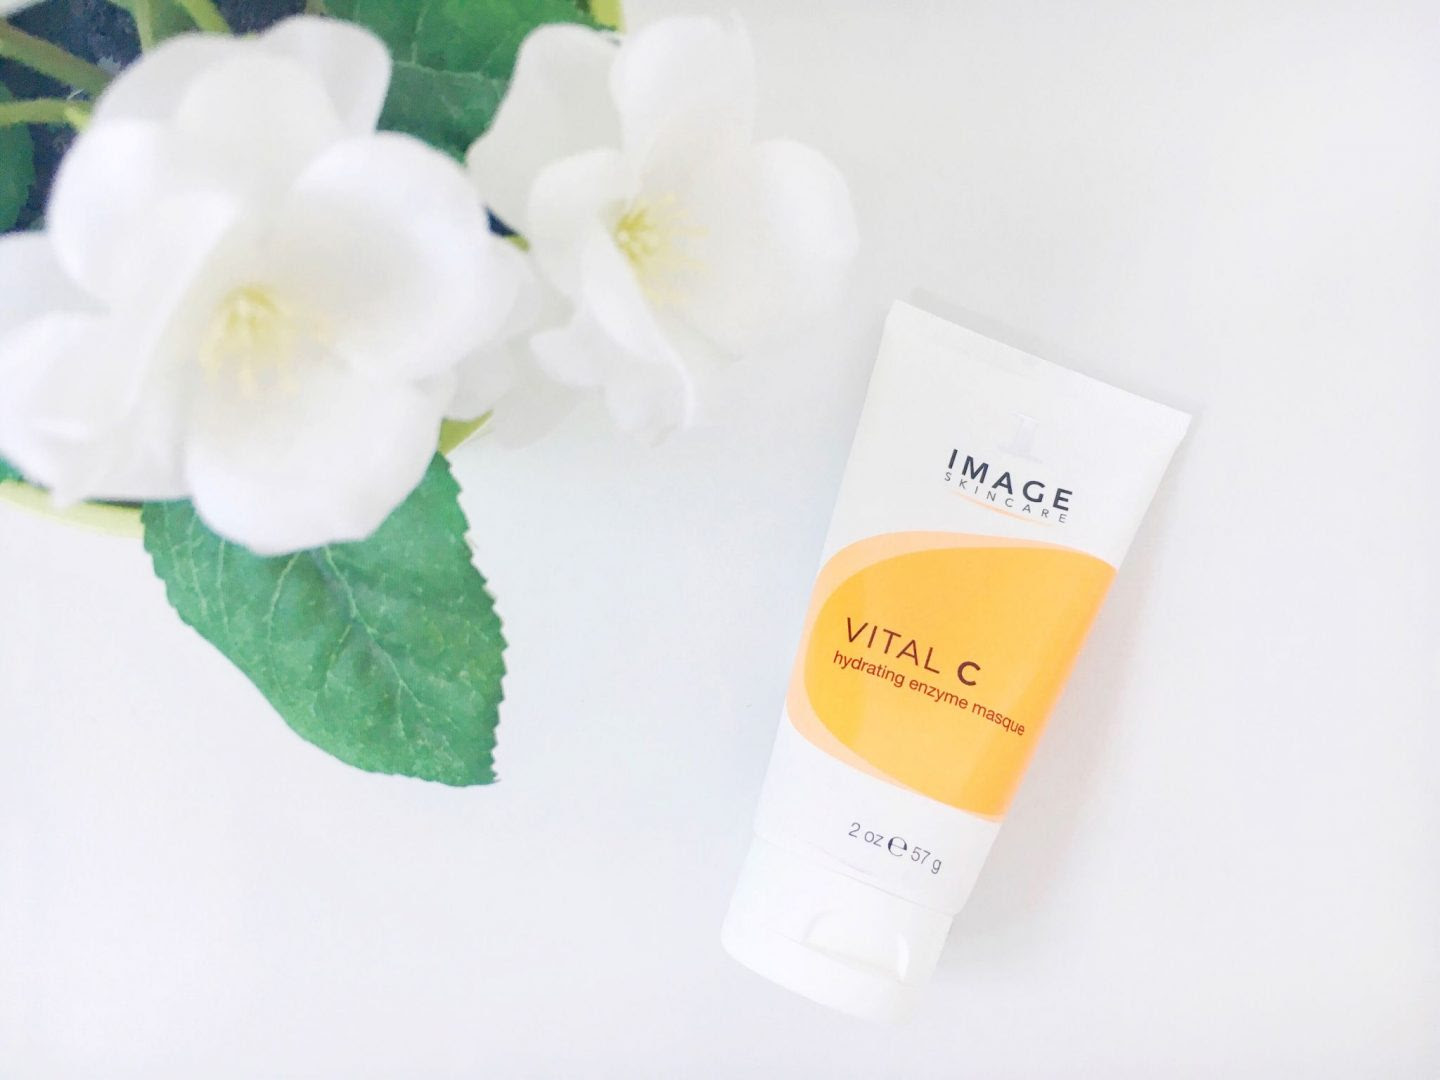 Image Skincare Vital C Masque Review Beauty Baking Bella Com